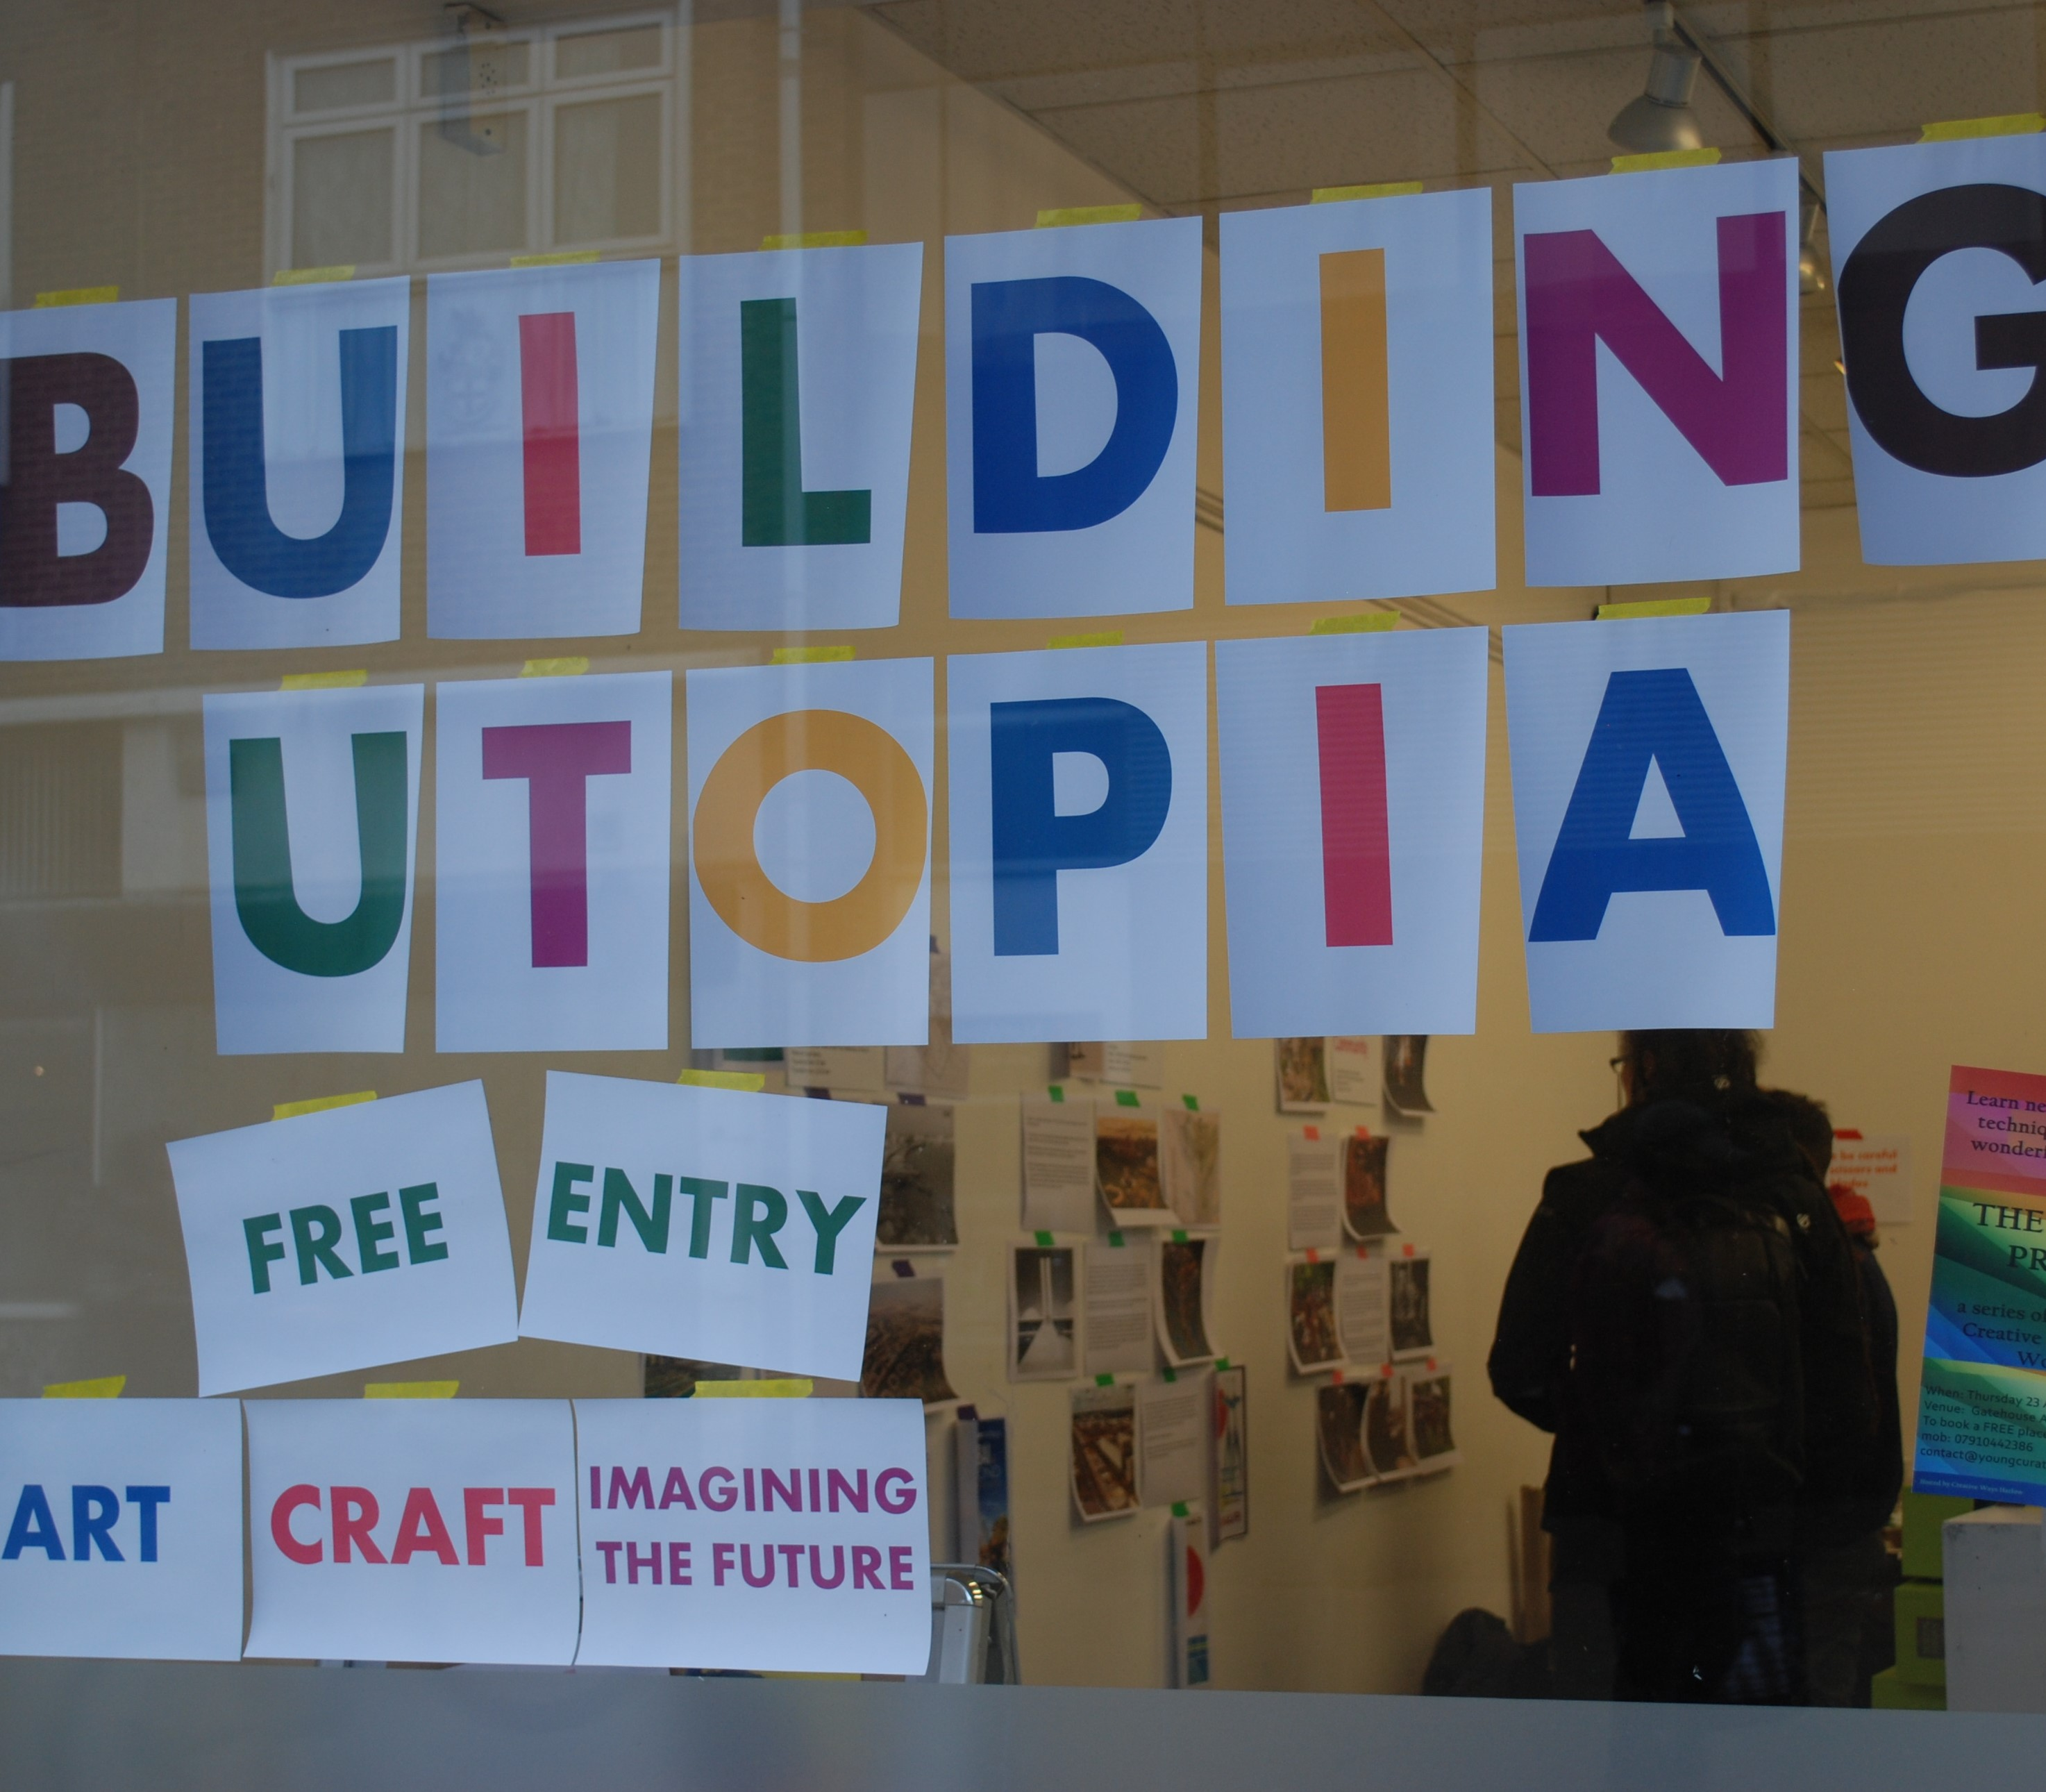 Building Utopia workshop with Gatehouse Arts